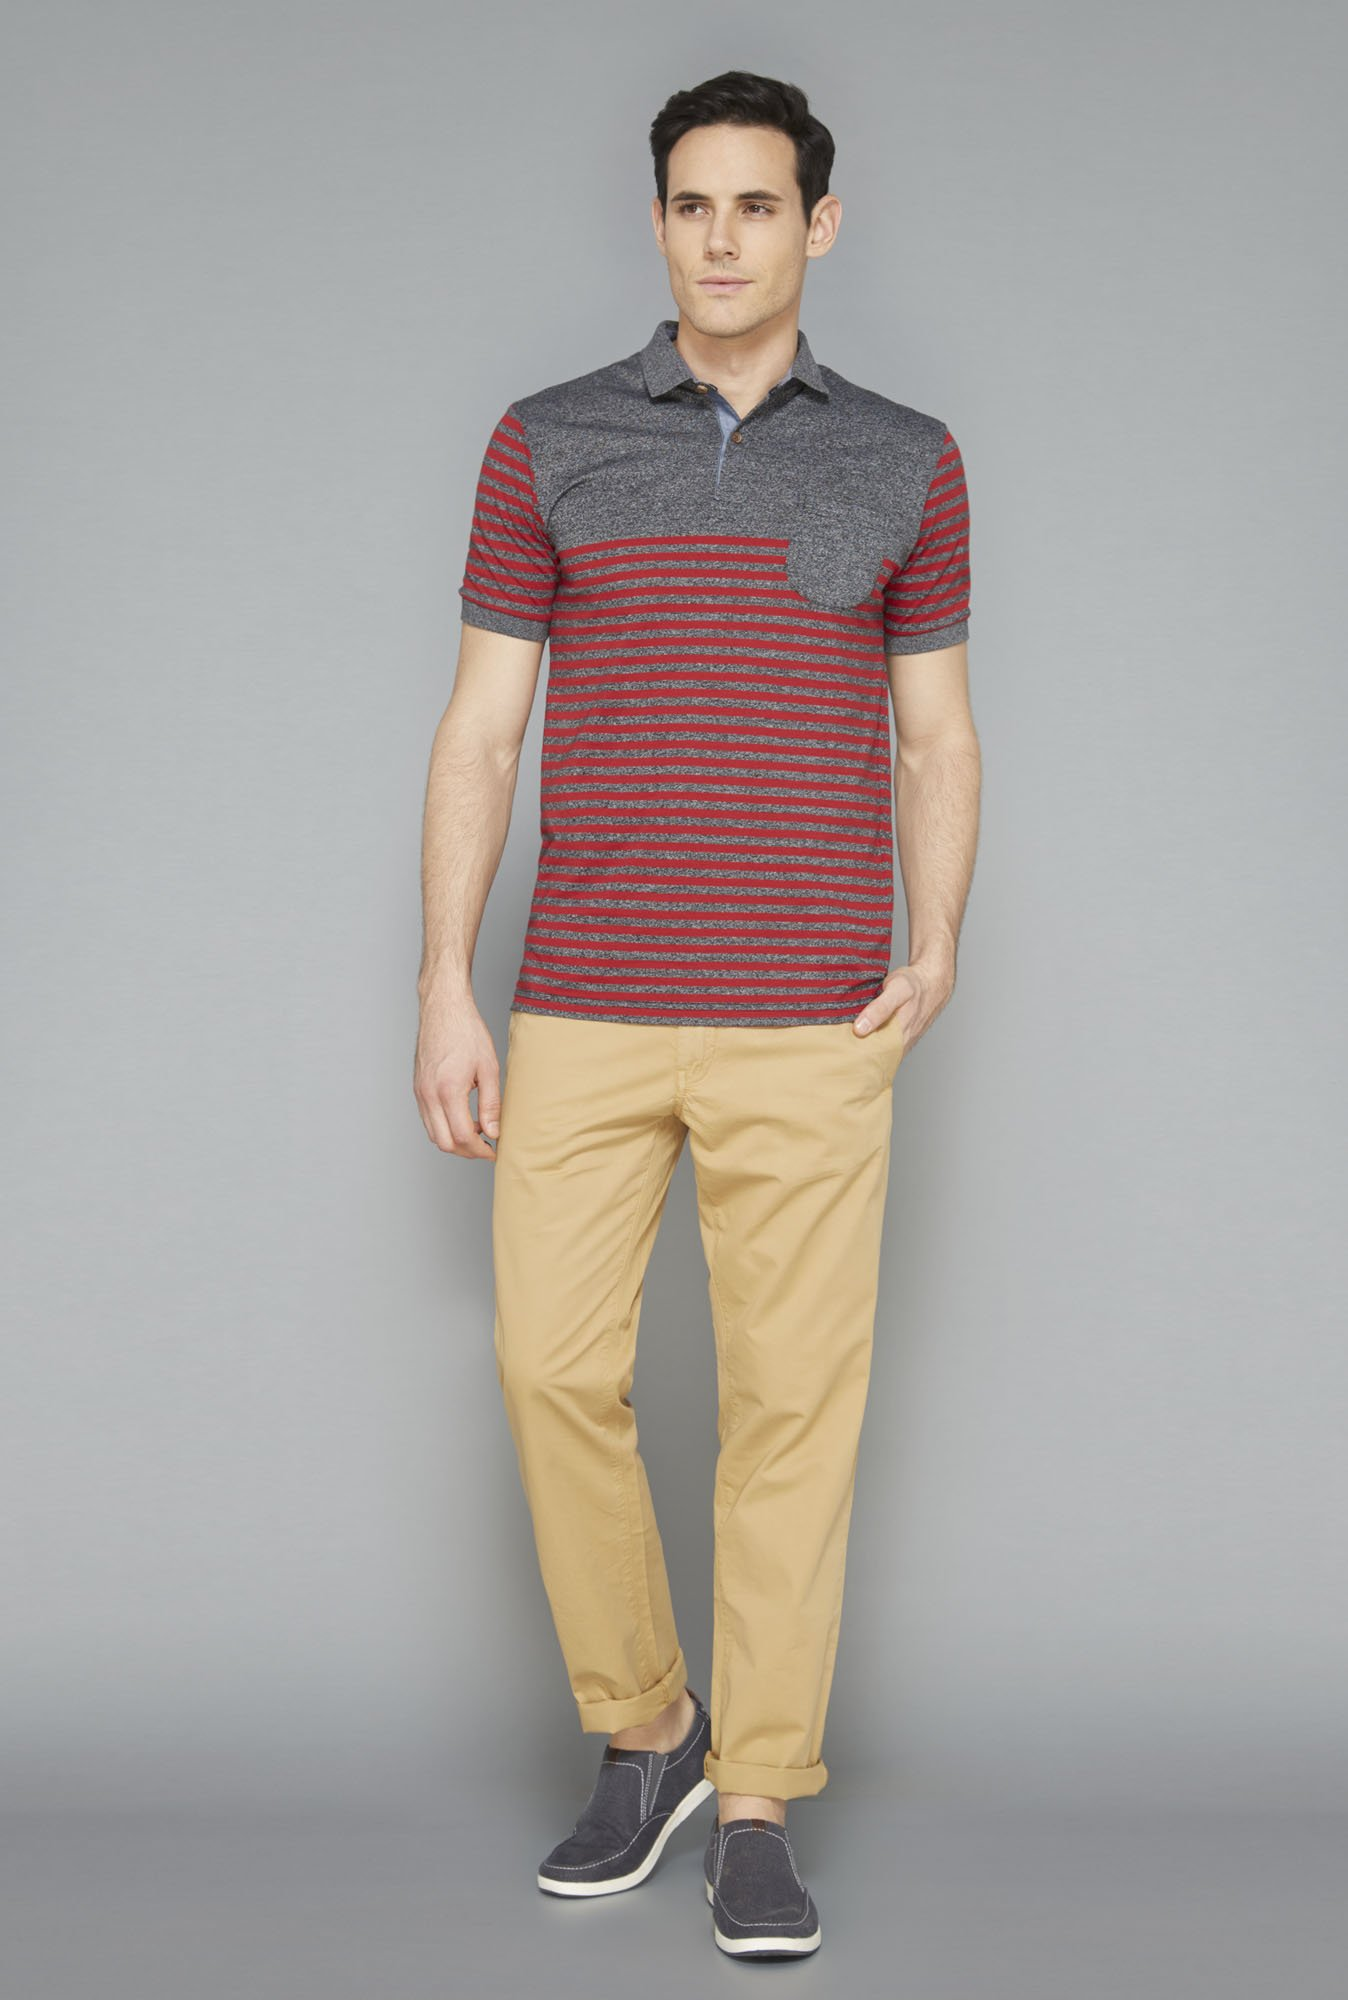 Westsport Mens Red Striped T-Shirt